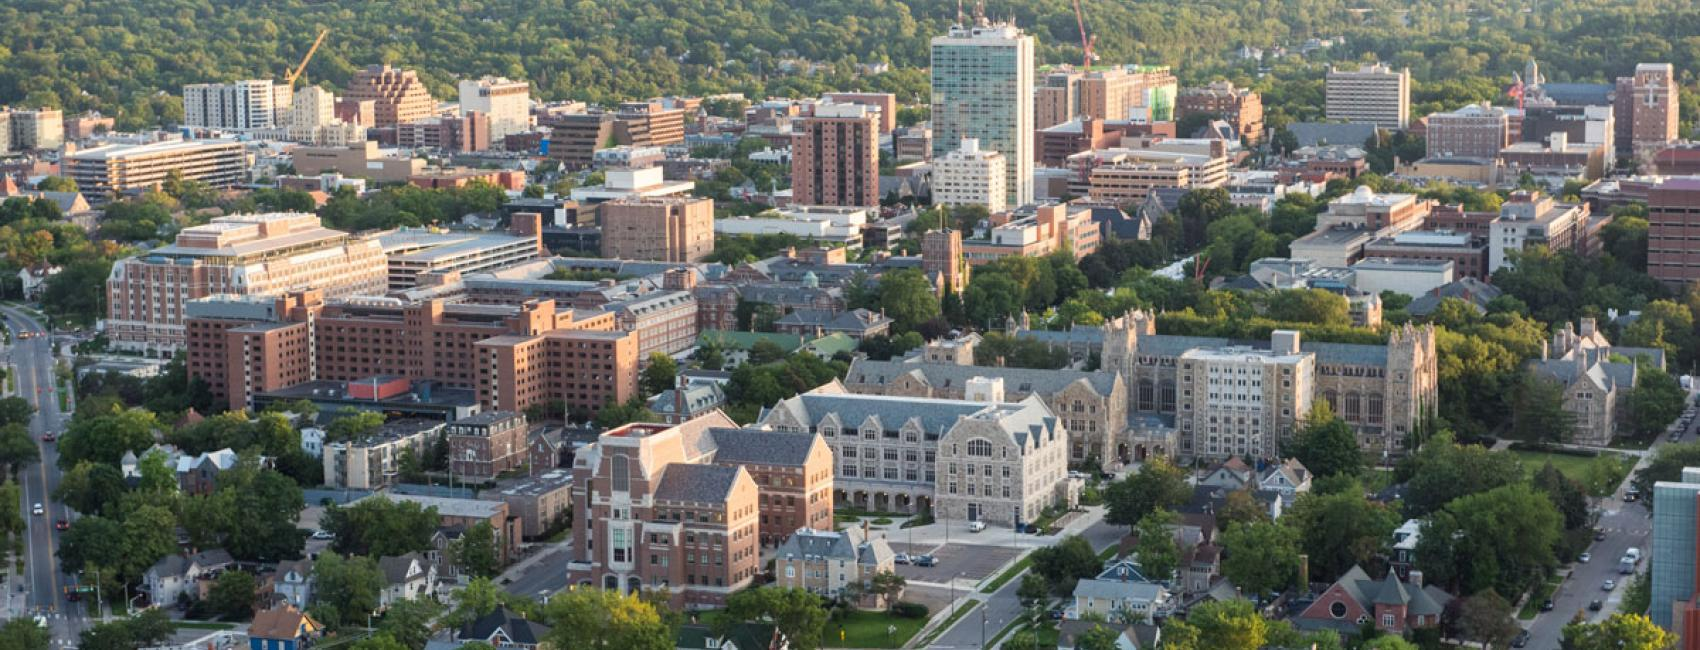 Medical Schools In Michigan >> Housing University Of Michigan Medical School